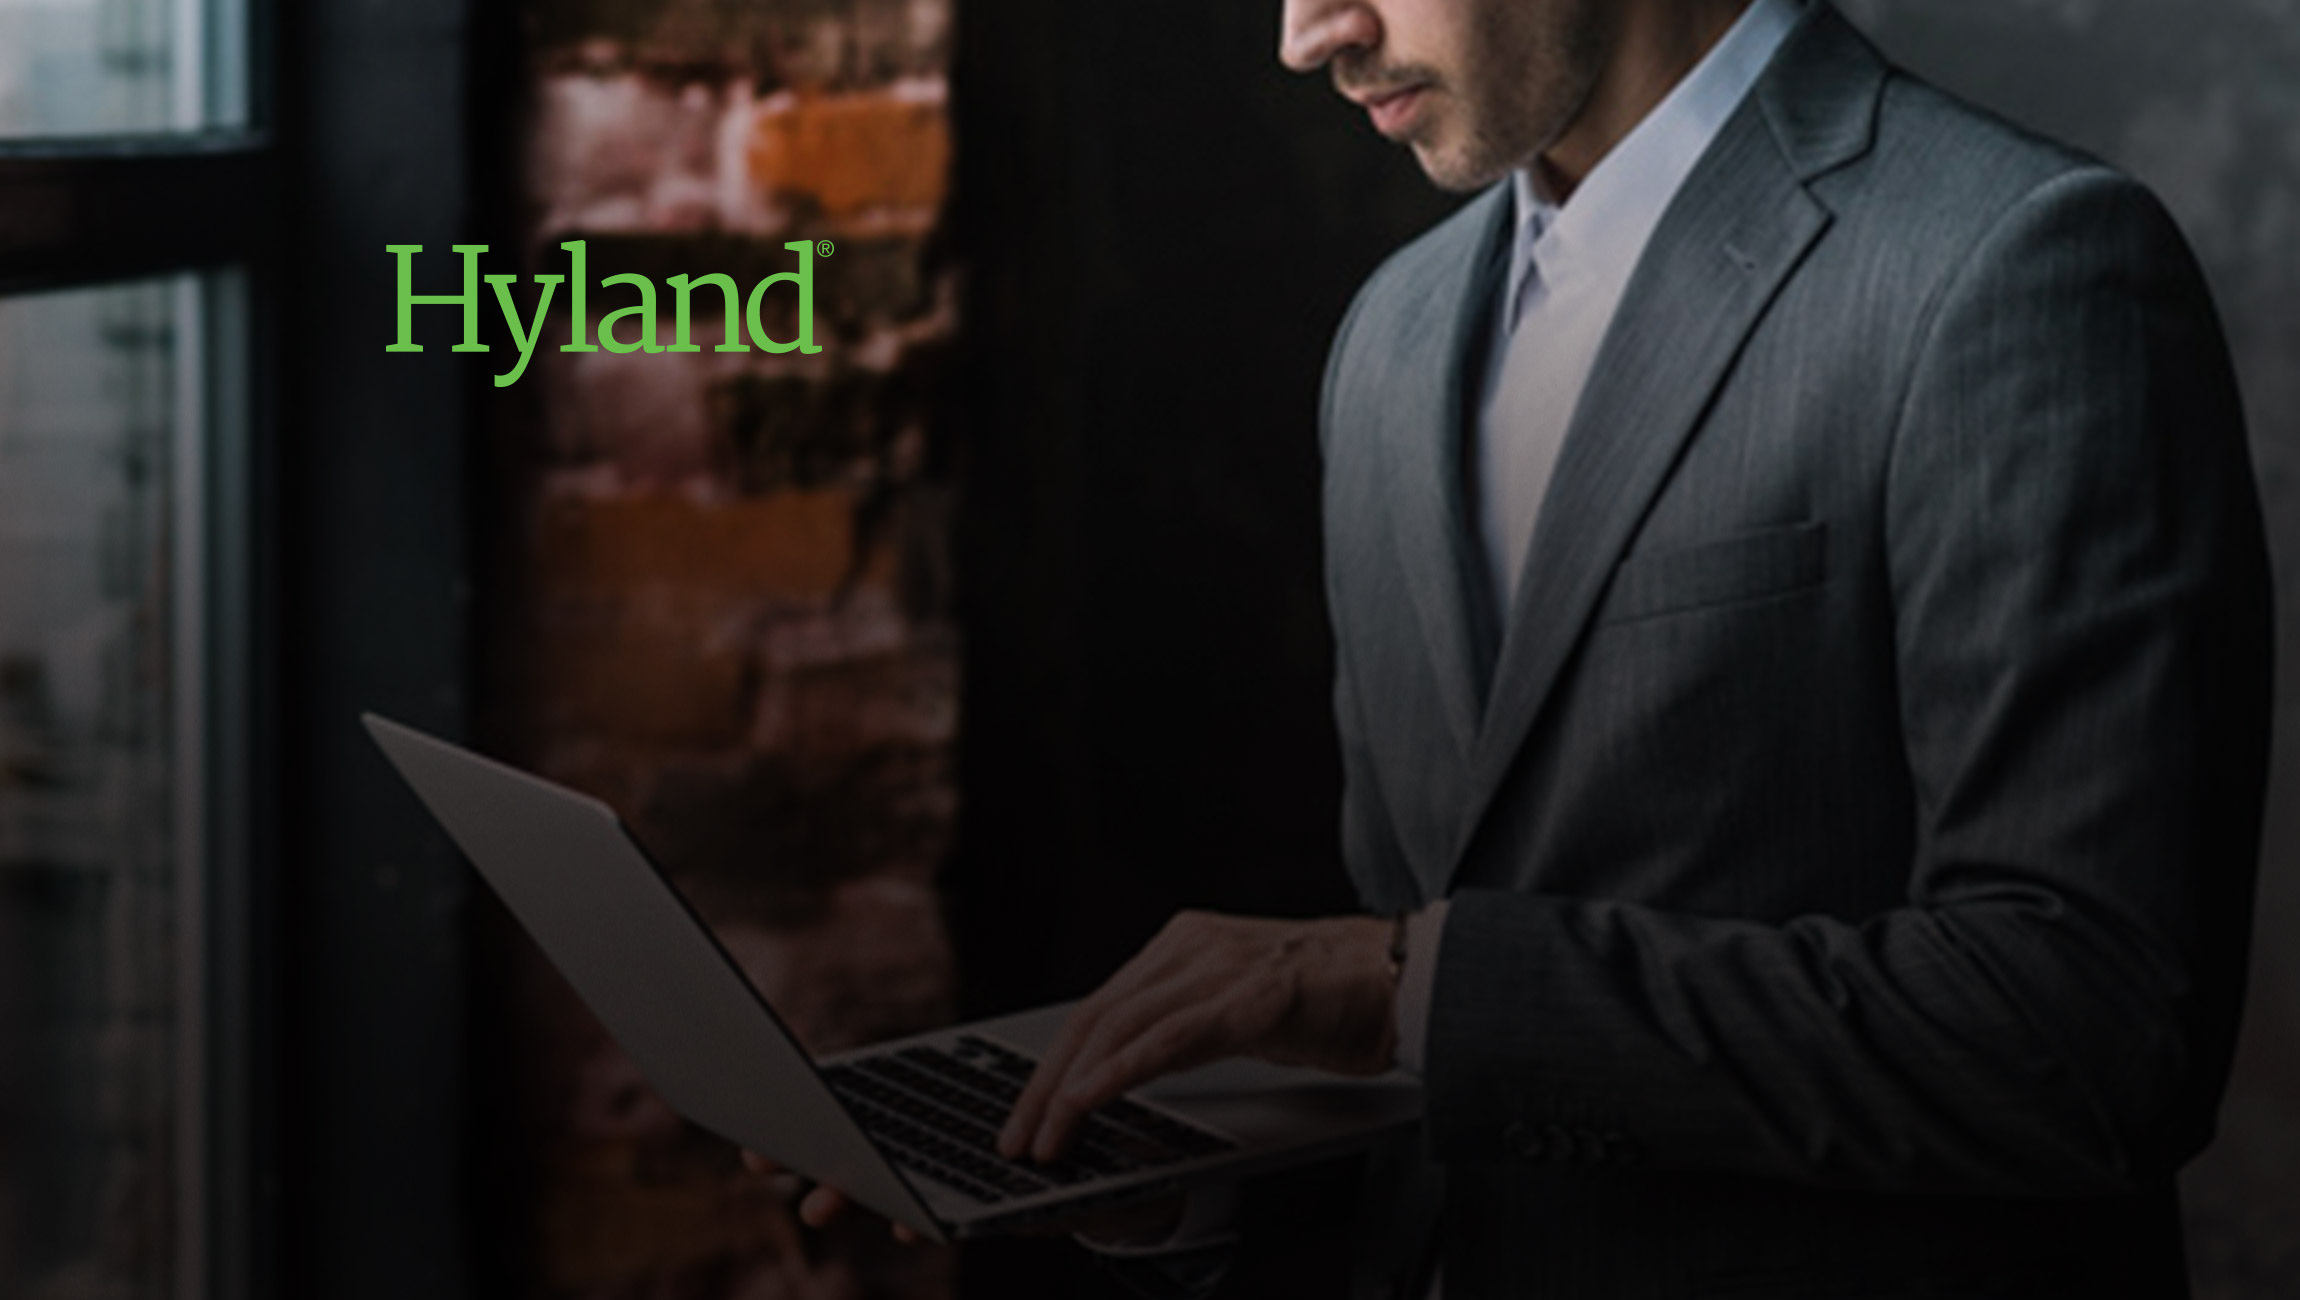 Hyland Releases Latest Versions of OnBase and Perceptive Content, Delivering on New Strategy of More Frequent Enhancements Across Products